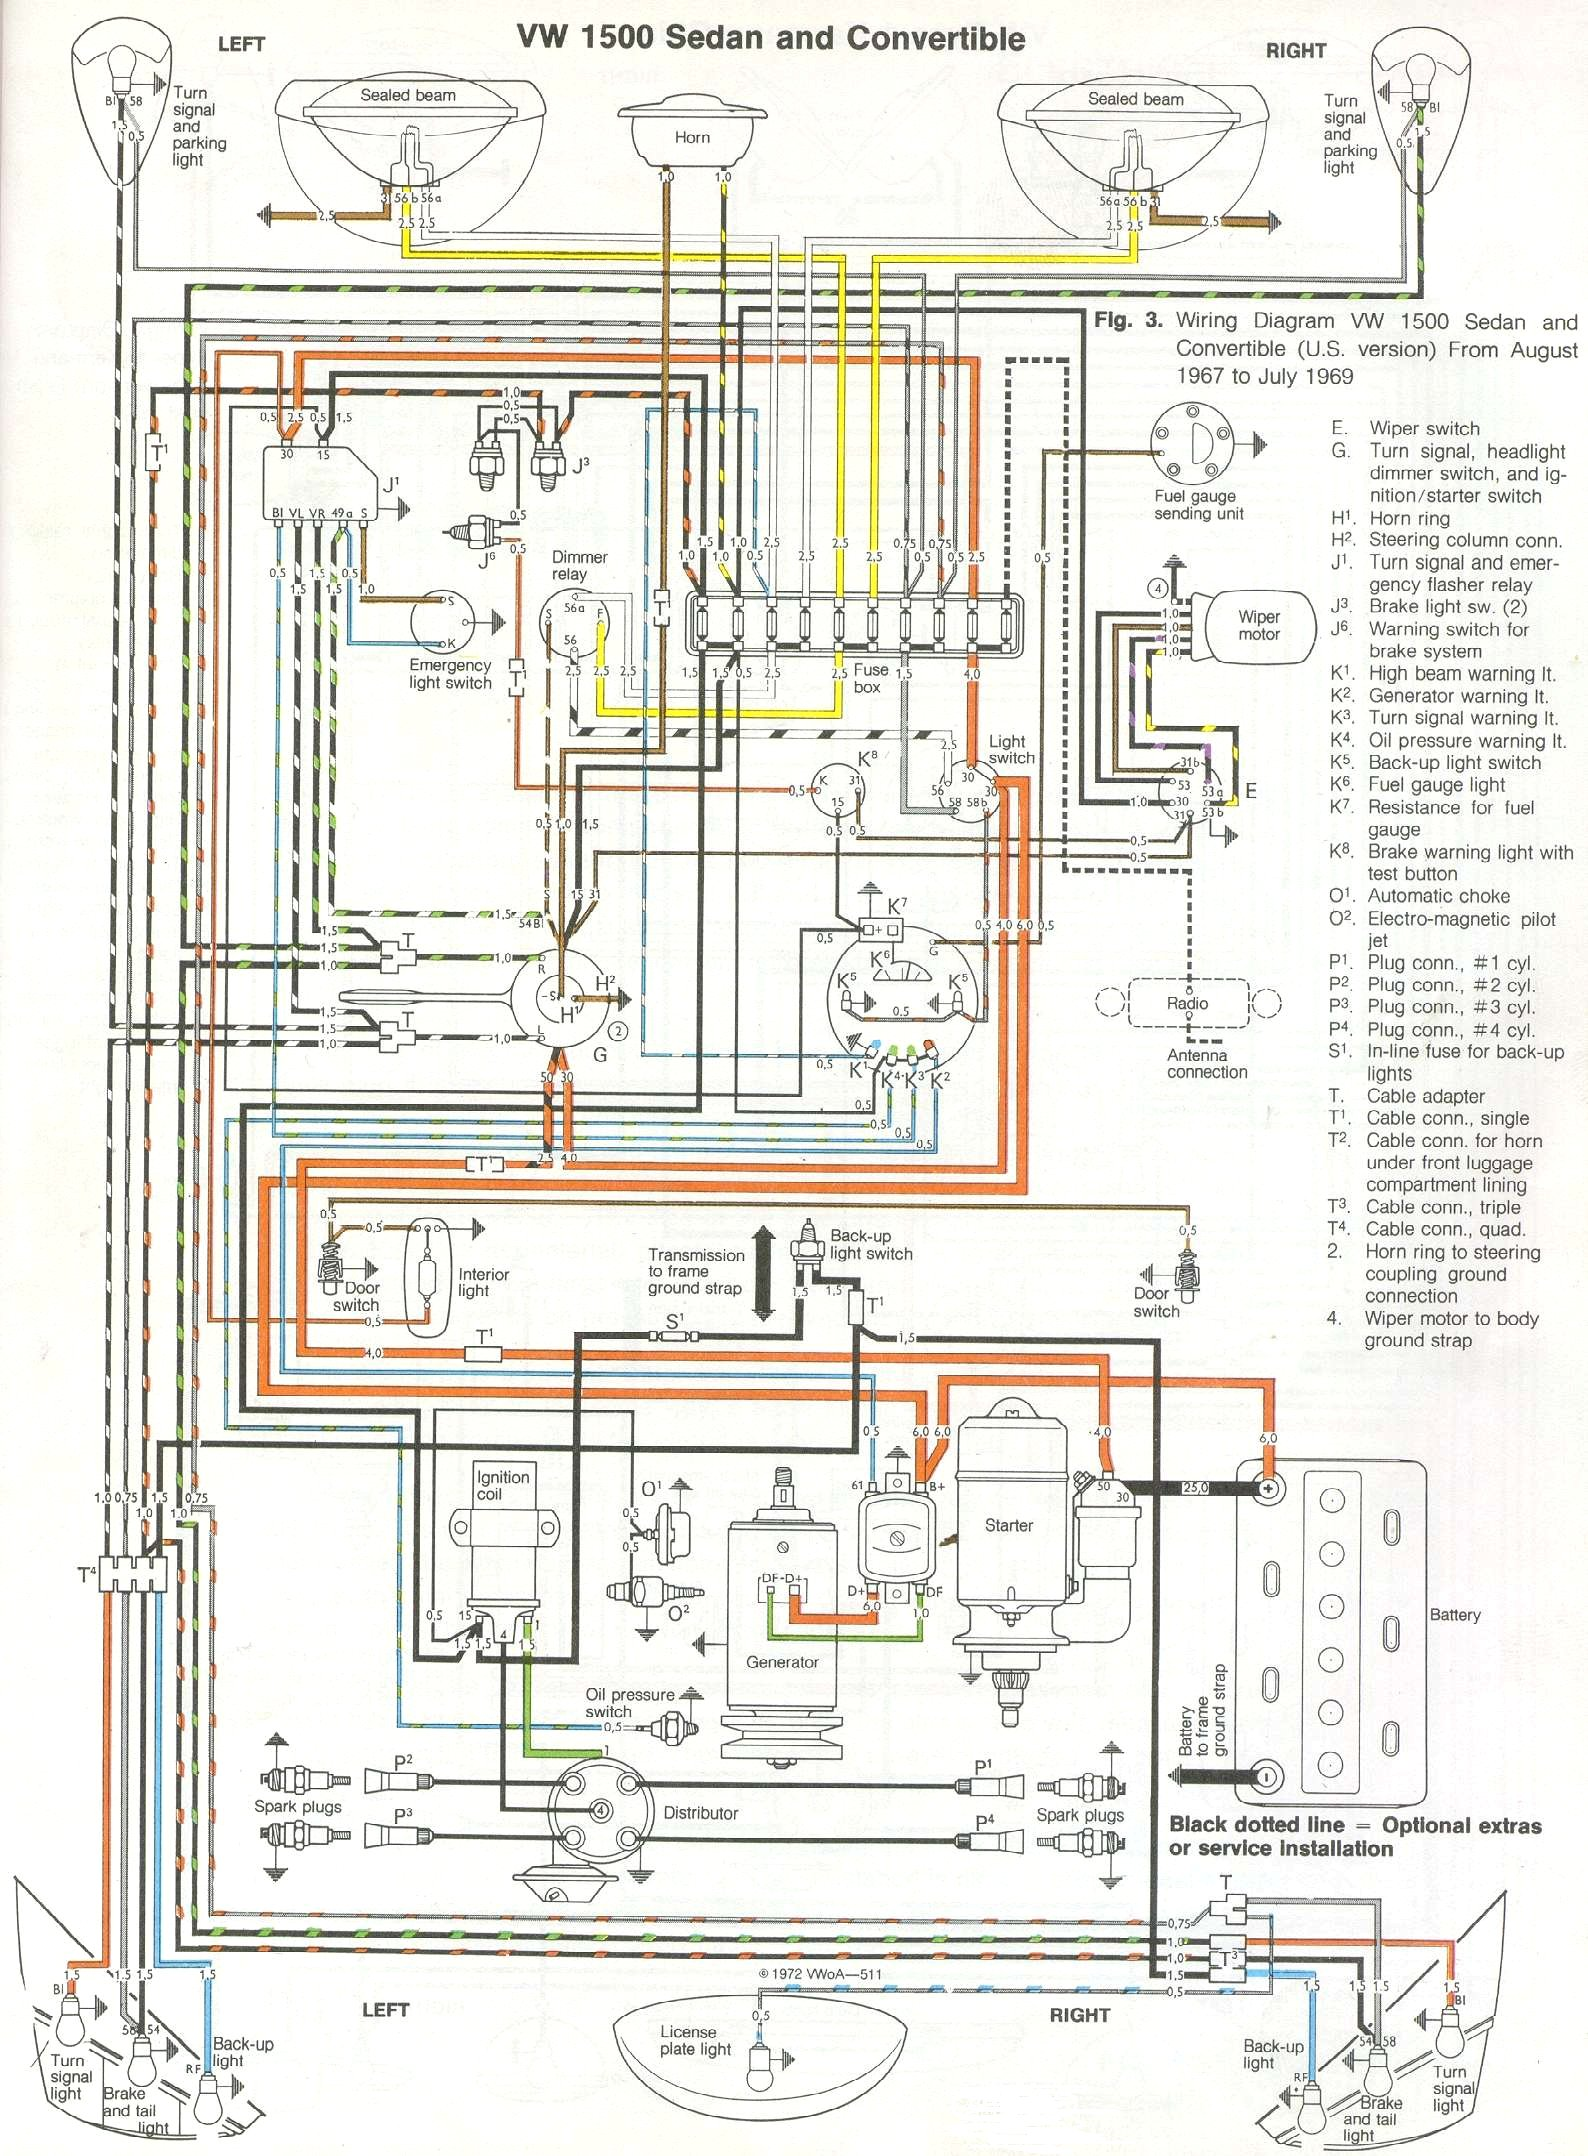 WRG-2228] Pat Engine Wiring Diagram on